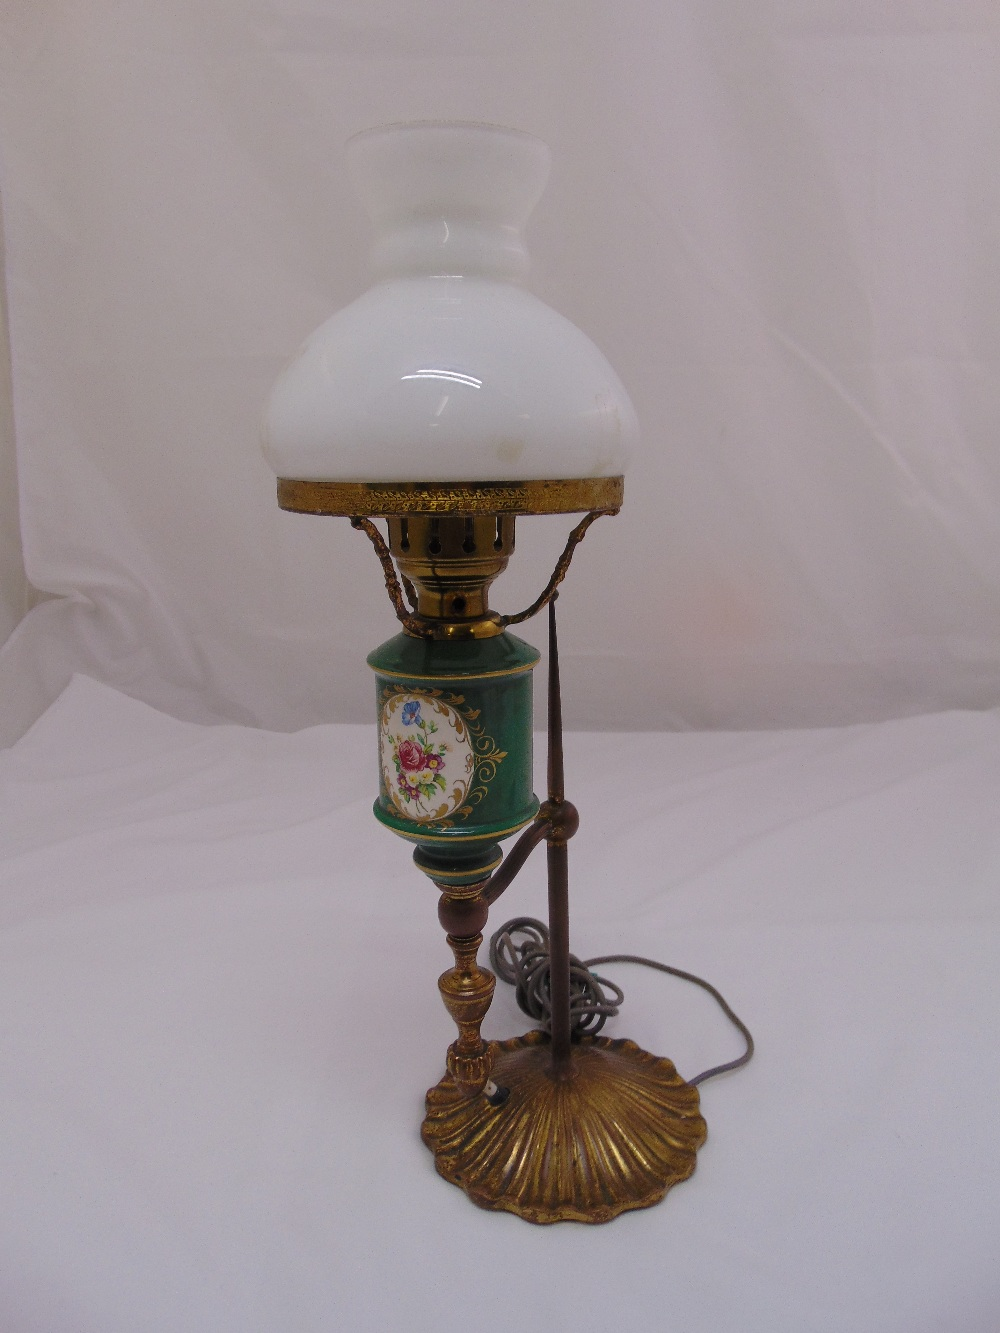 Lot 29 - A porcelain and brass table lamp with detachable glass dome